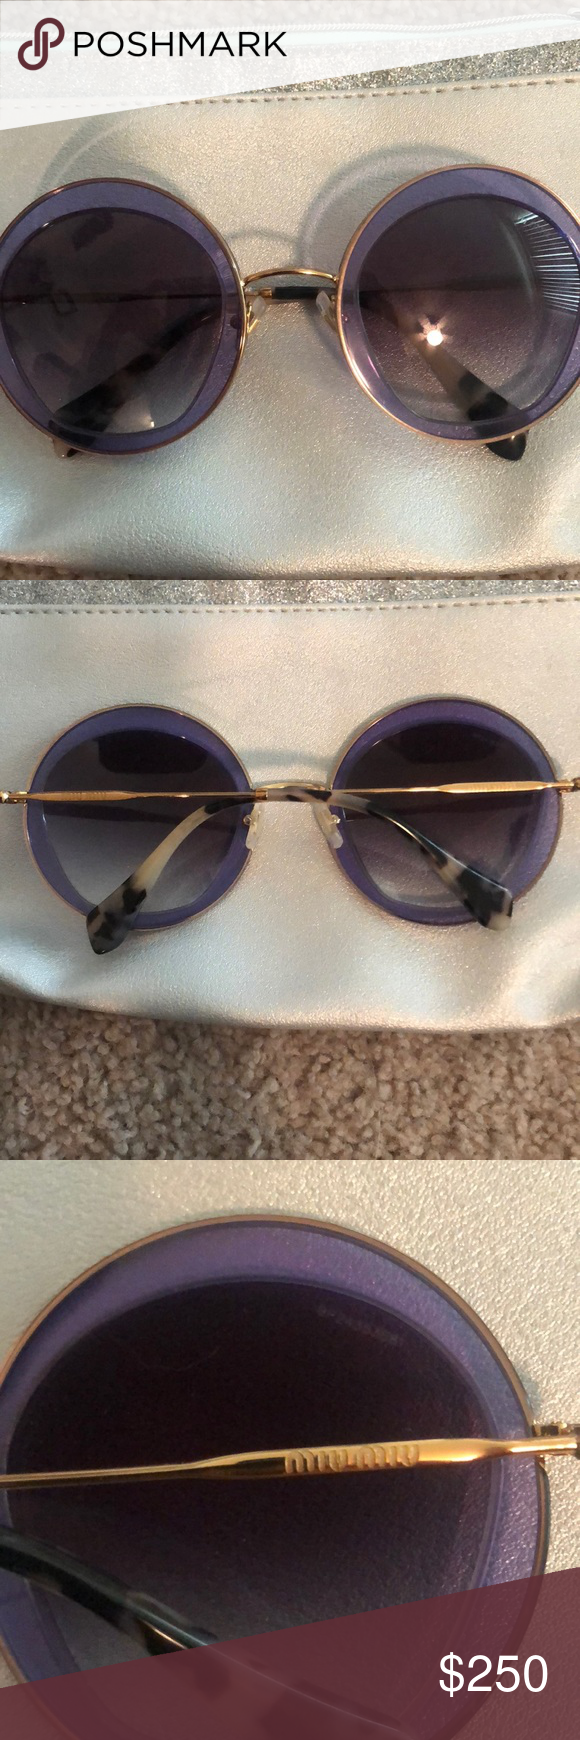 64740733e85 Spotted while shopping on Poshmark  MIU MIU sunglasses NWOT!  poshmark   fashion  shopping  style  Miu Miu  Accessories